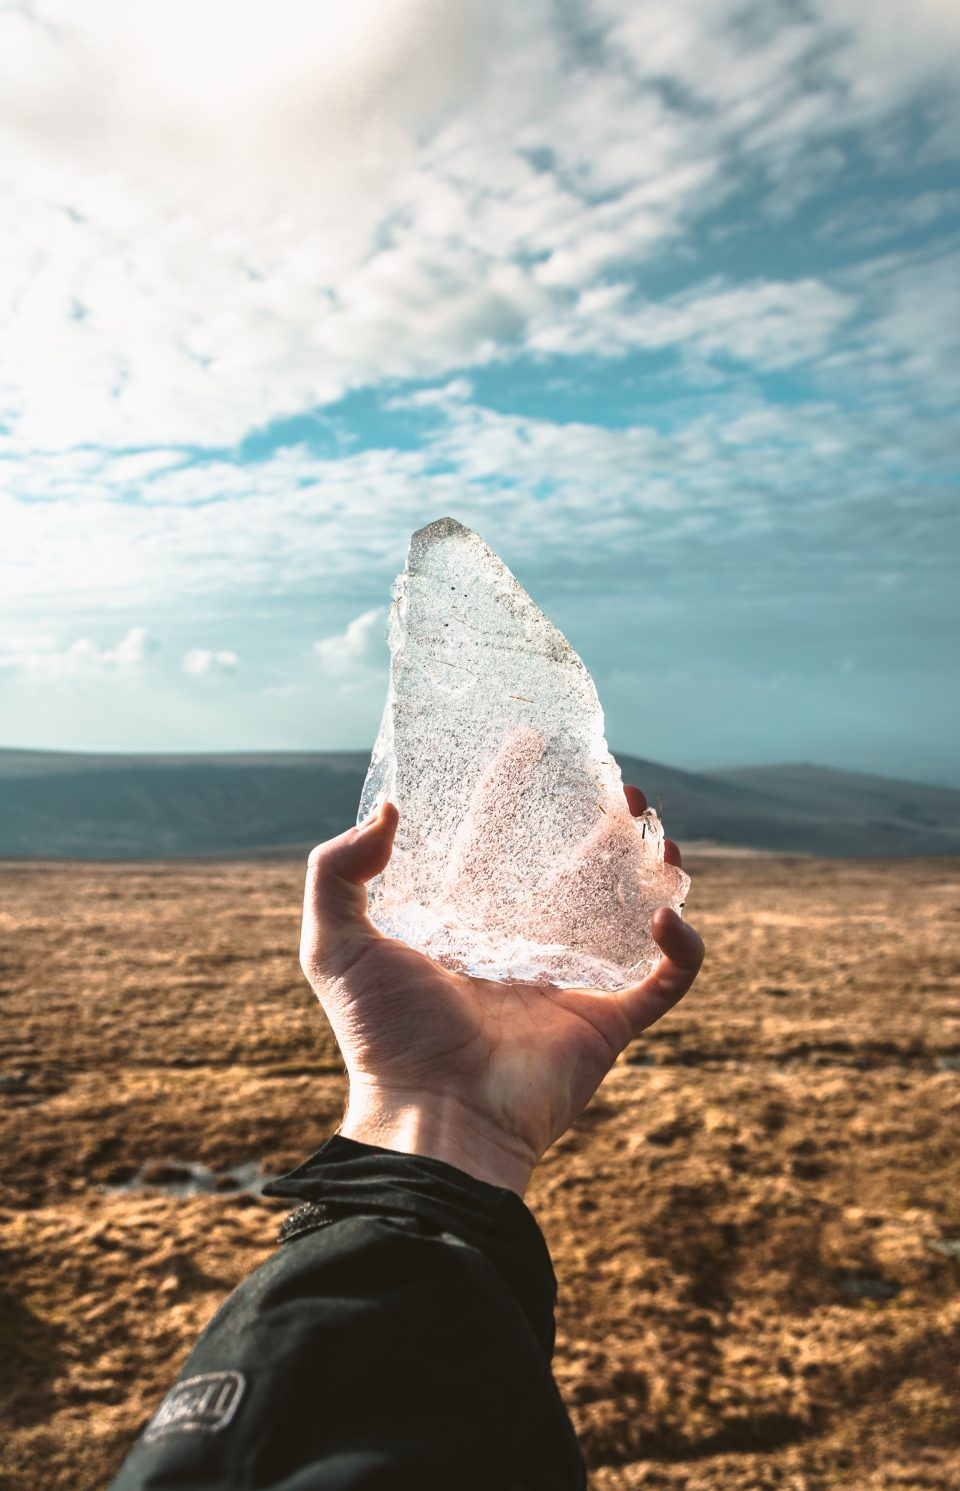 man holding ice in the desert